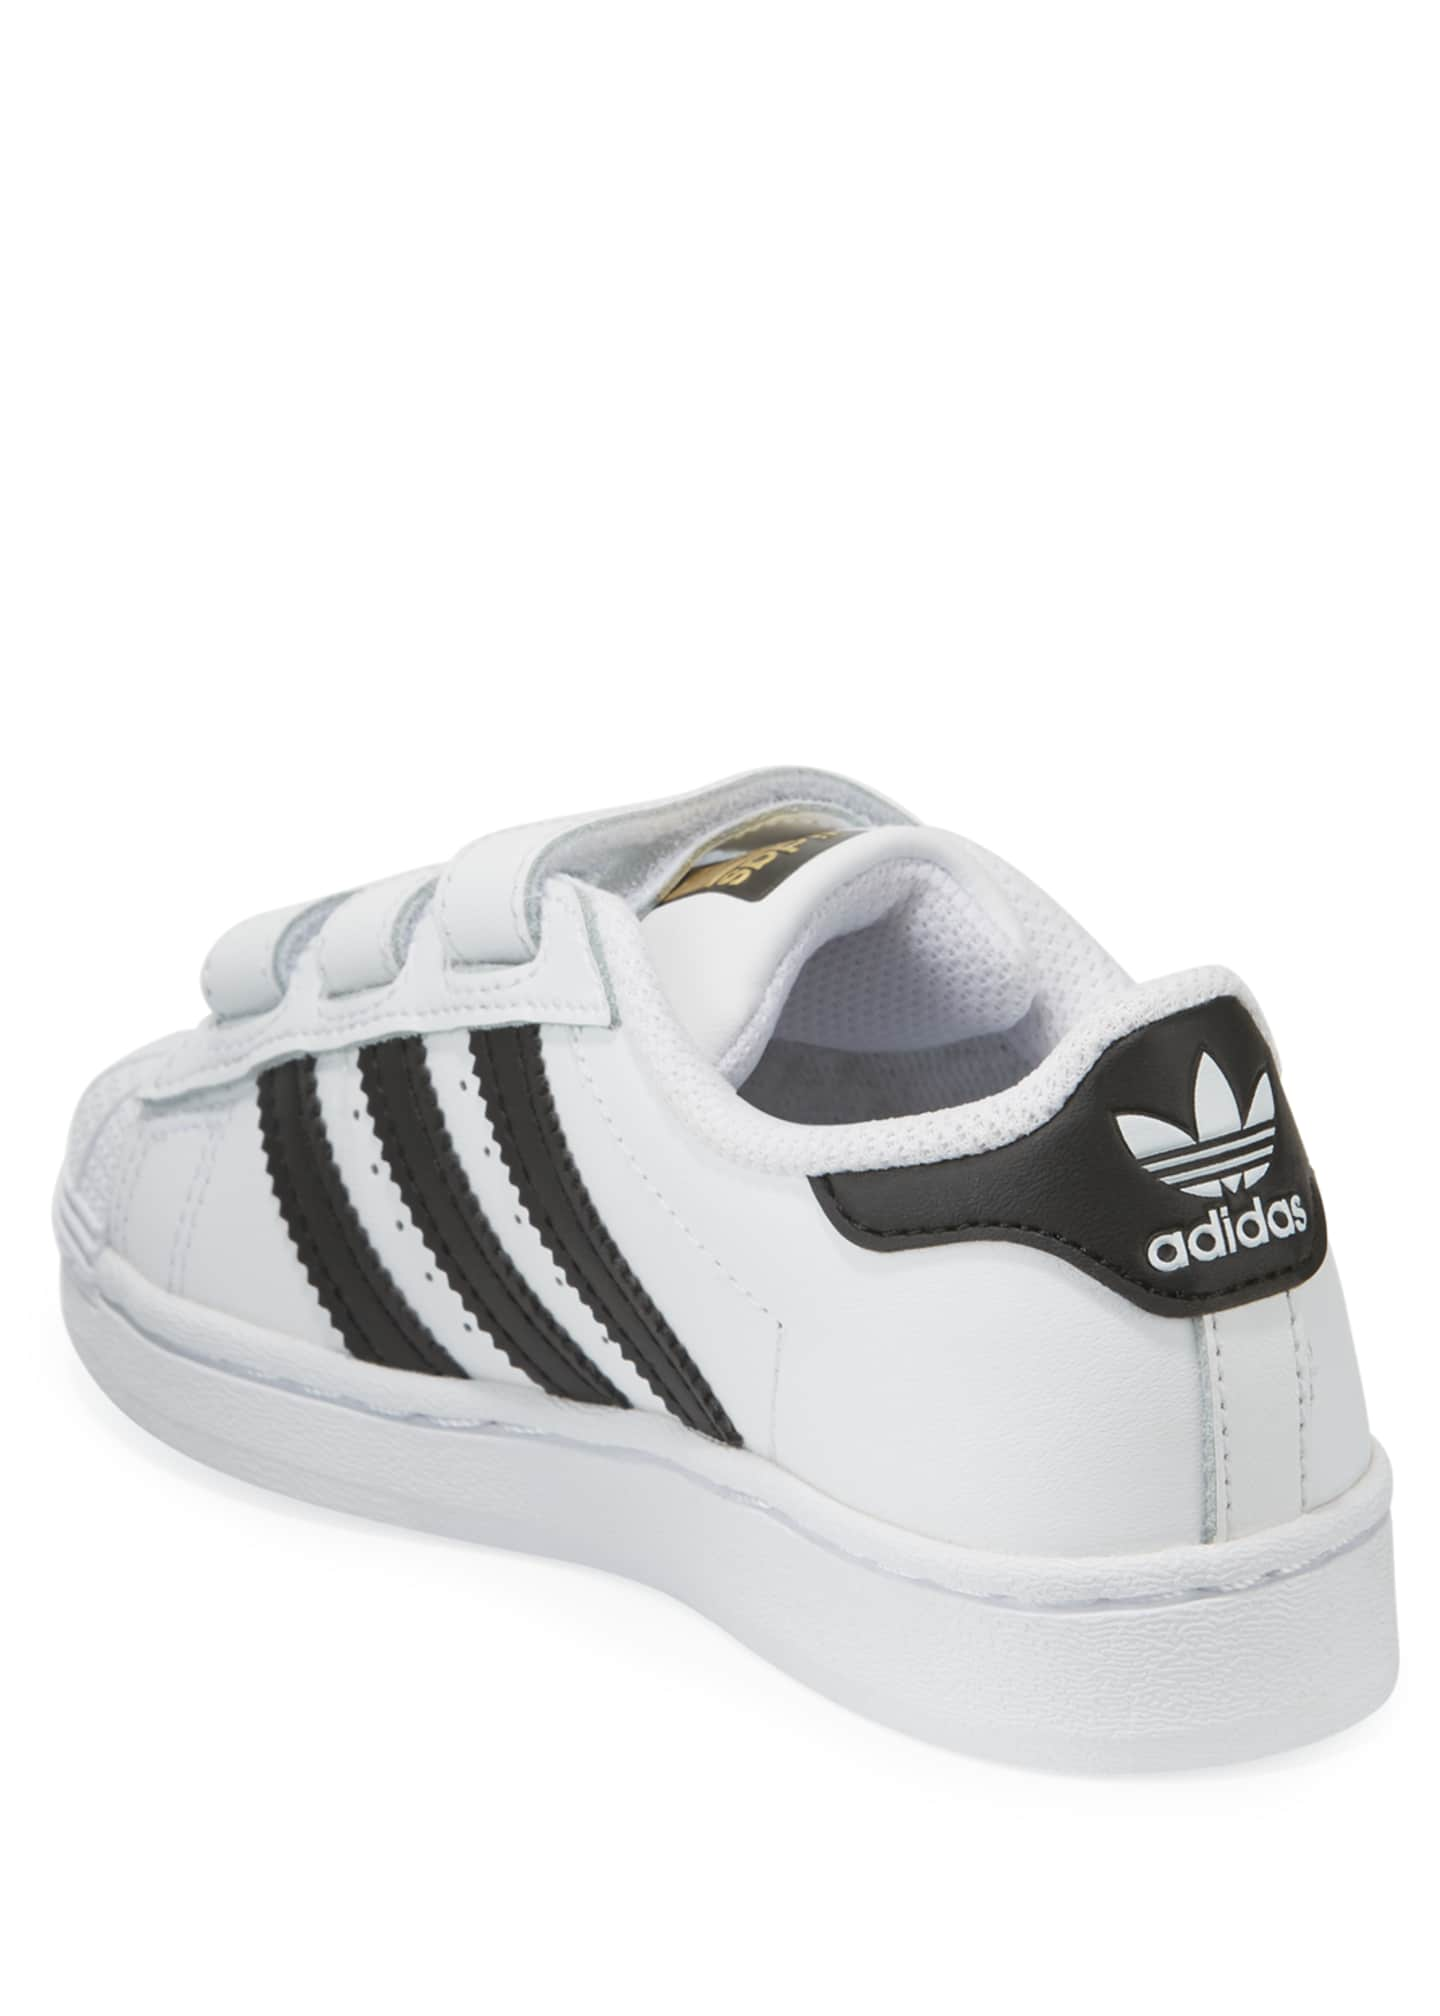 Image 4 of 4: Superstar Classic Sneakers, Toddler/Kids